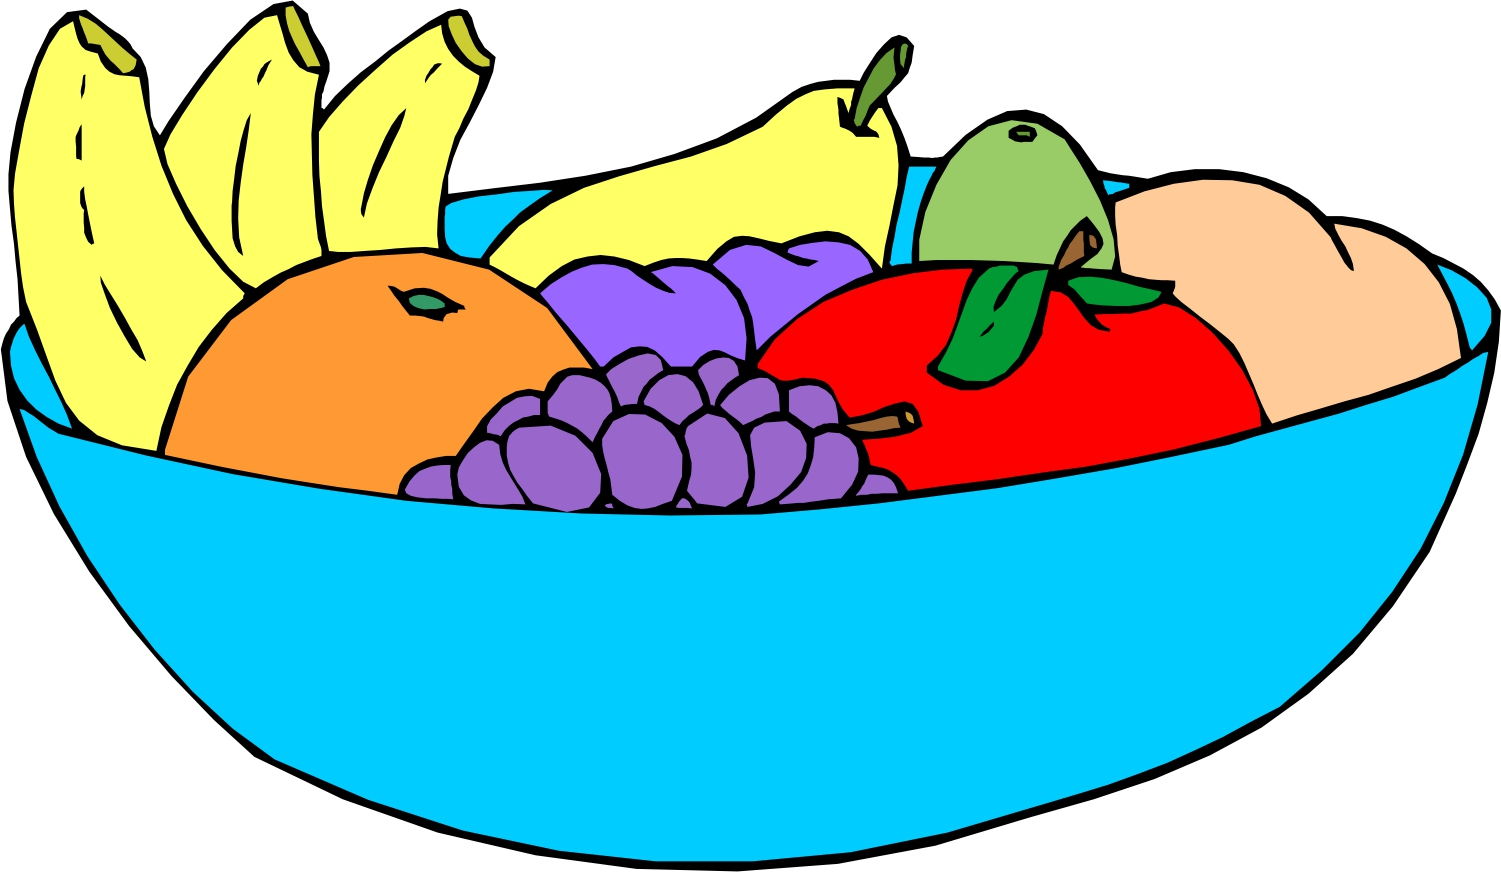 fruits basket clipart clipart panda free clipart images rh clipartpanda com fruit clipart free fruit clipart pdf